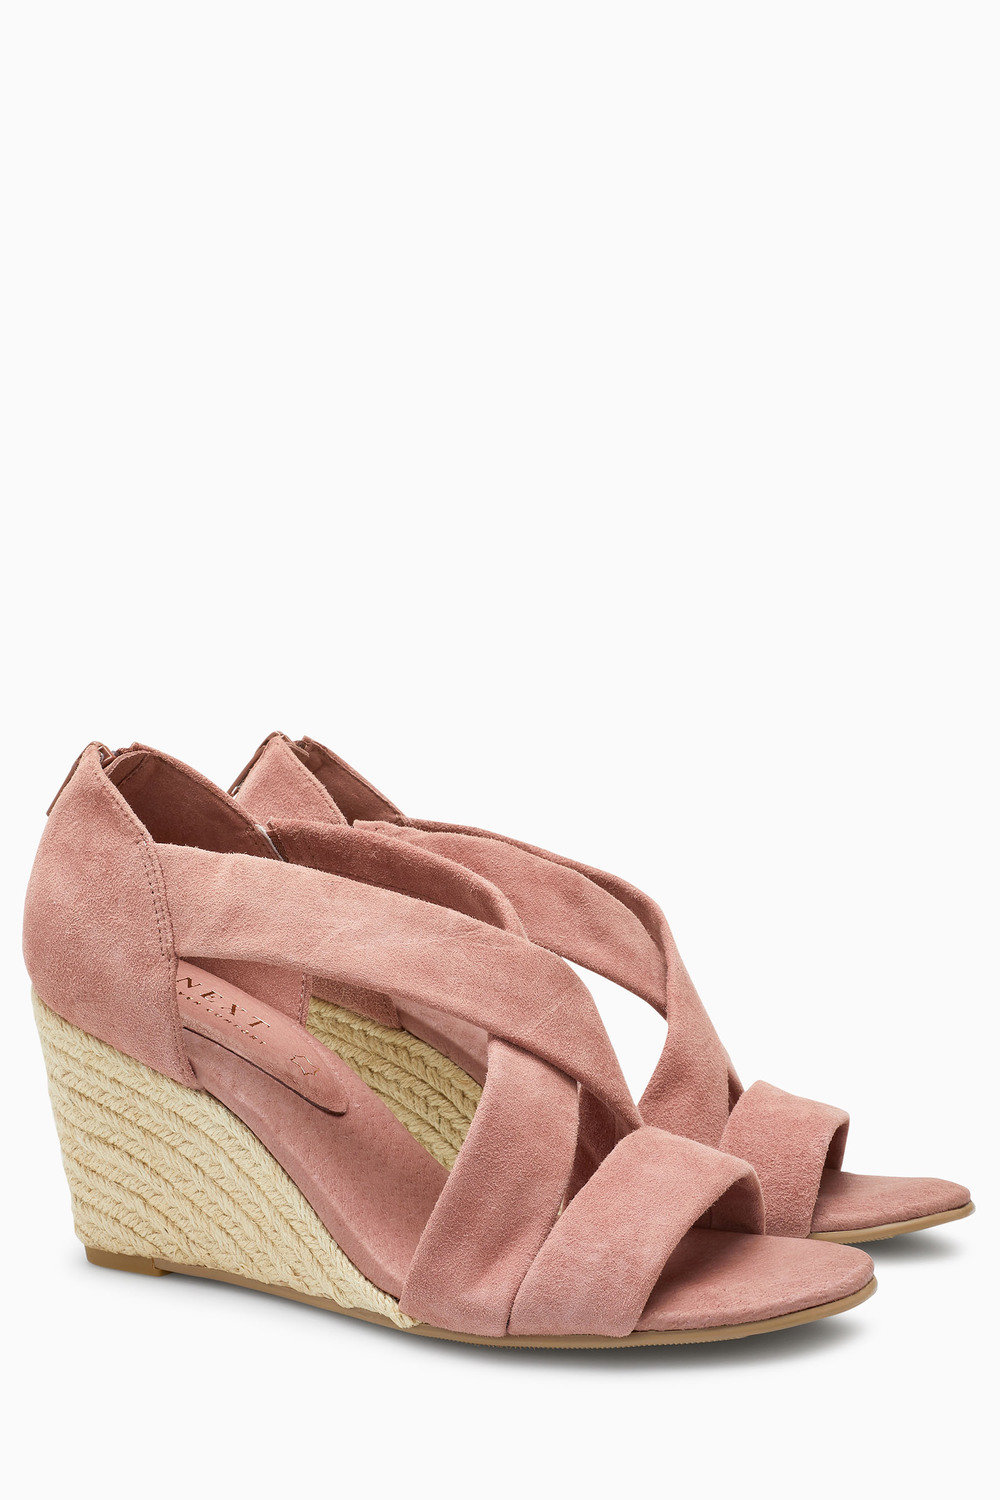 d9bc1a4be972 Next Suede Espadrille Wedges Online